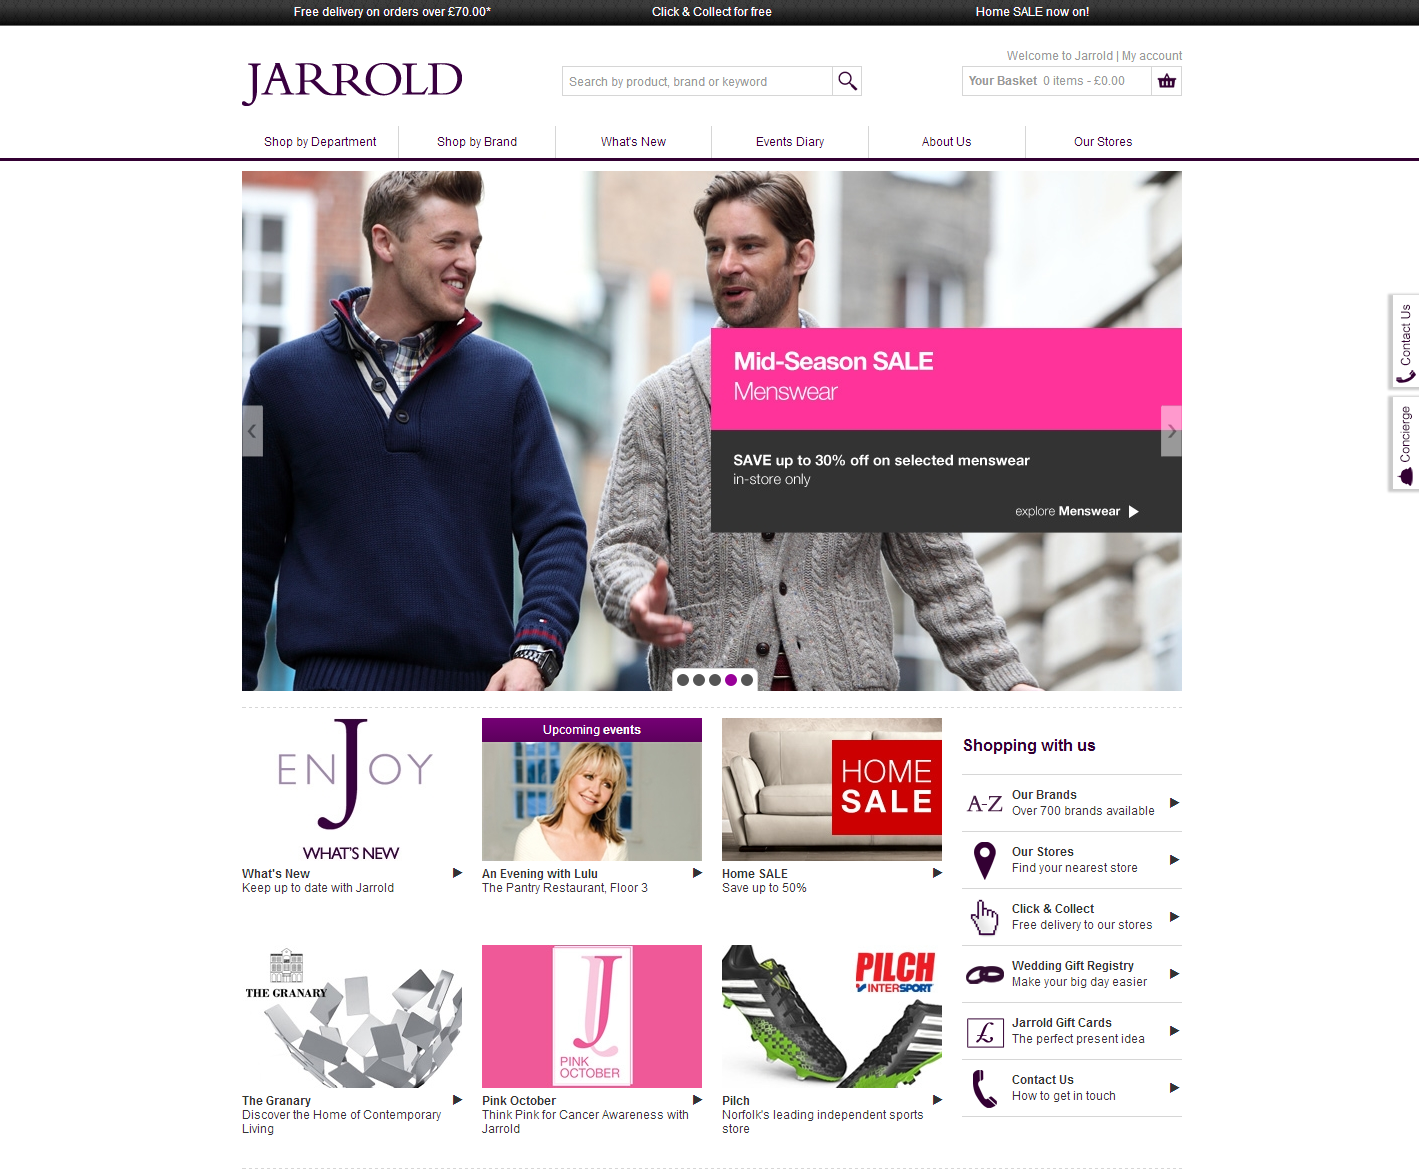 Jarrold's brand new website